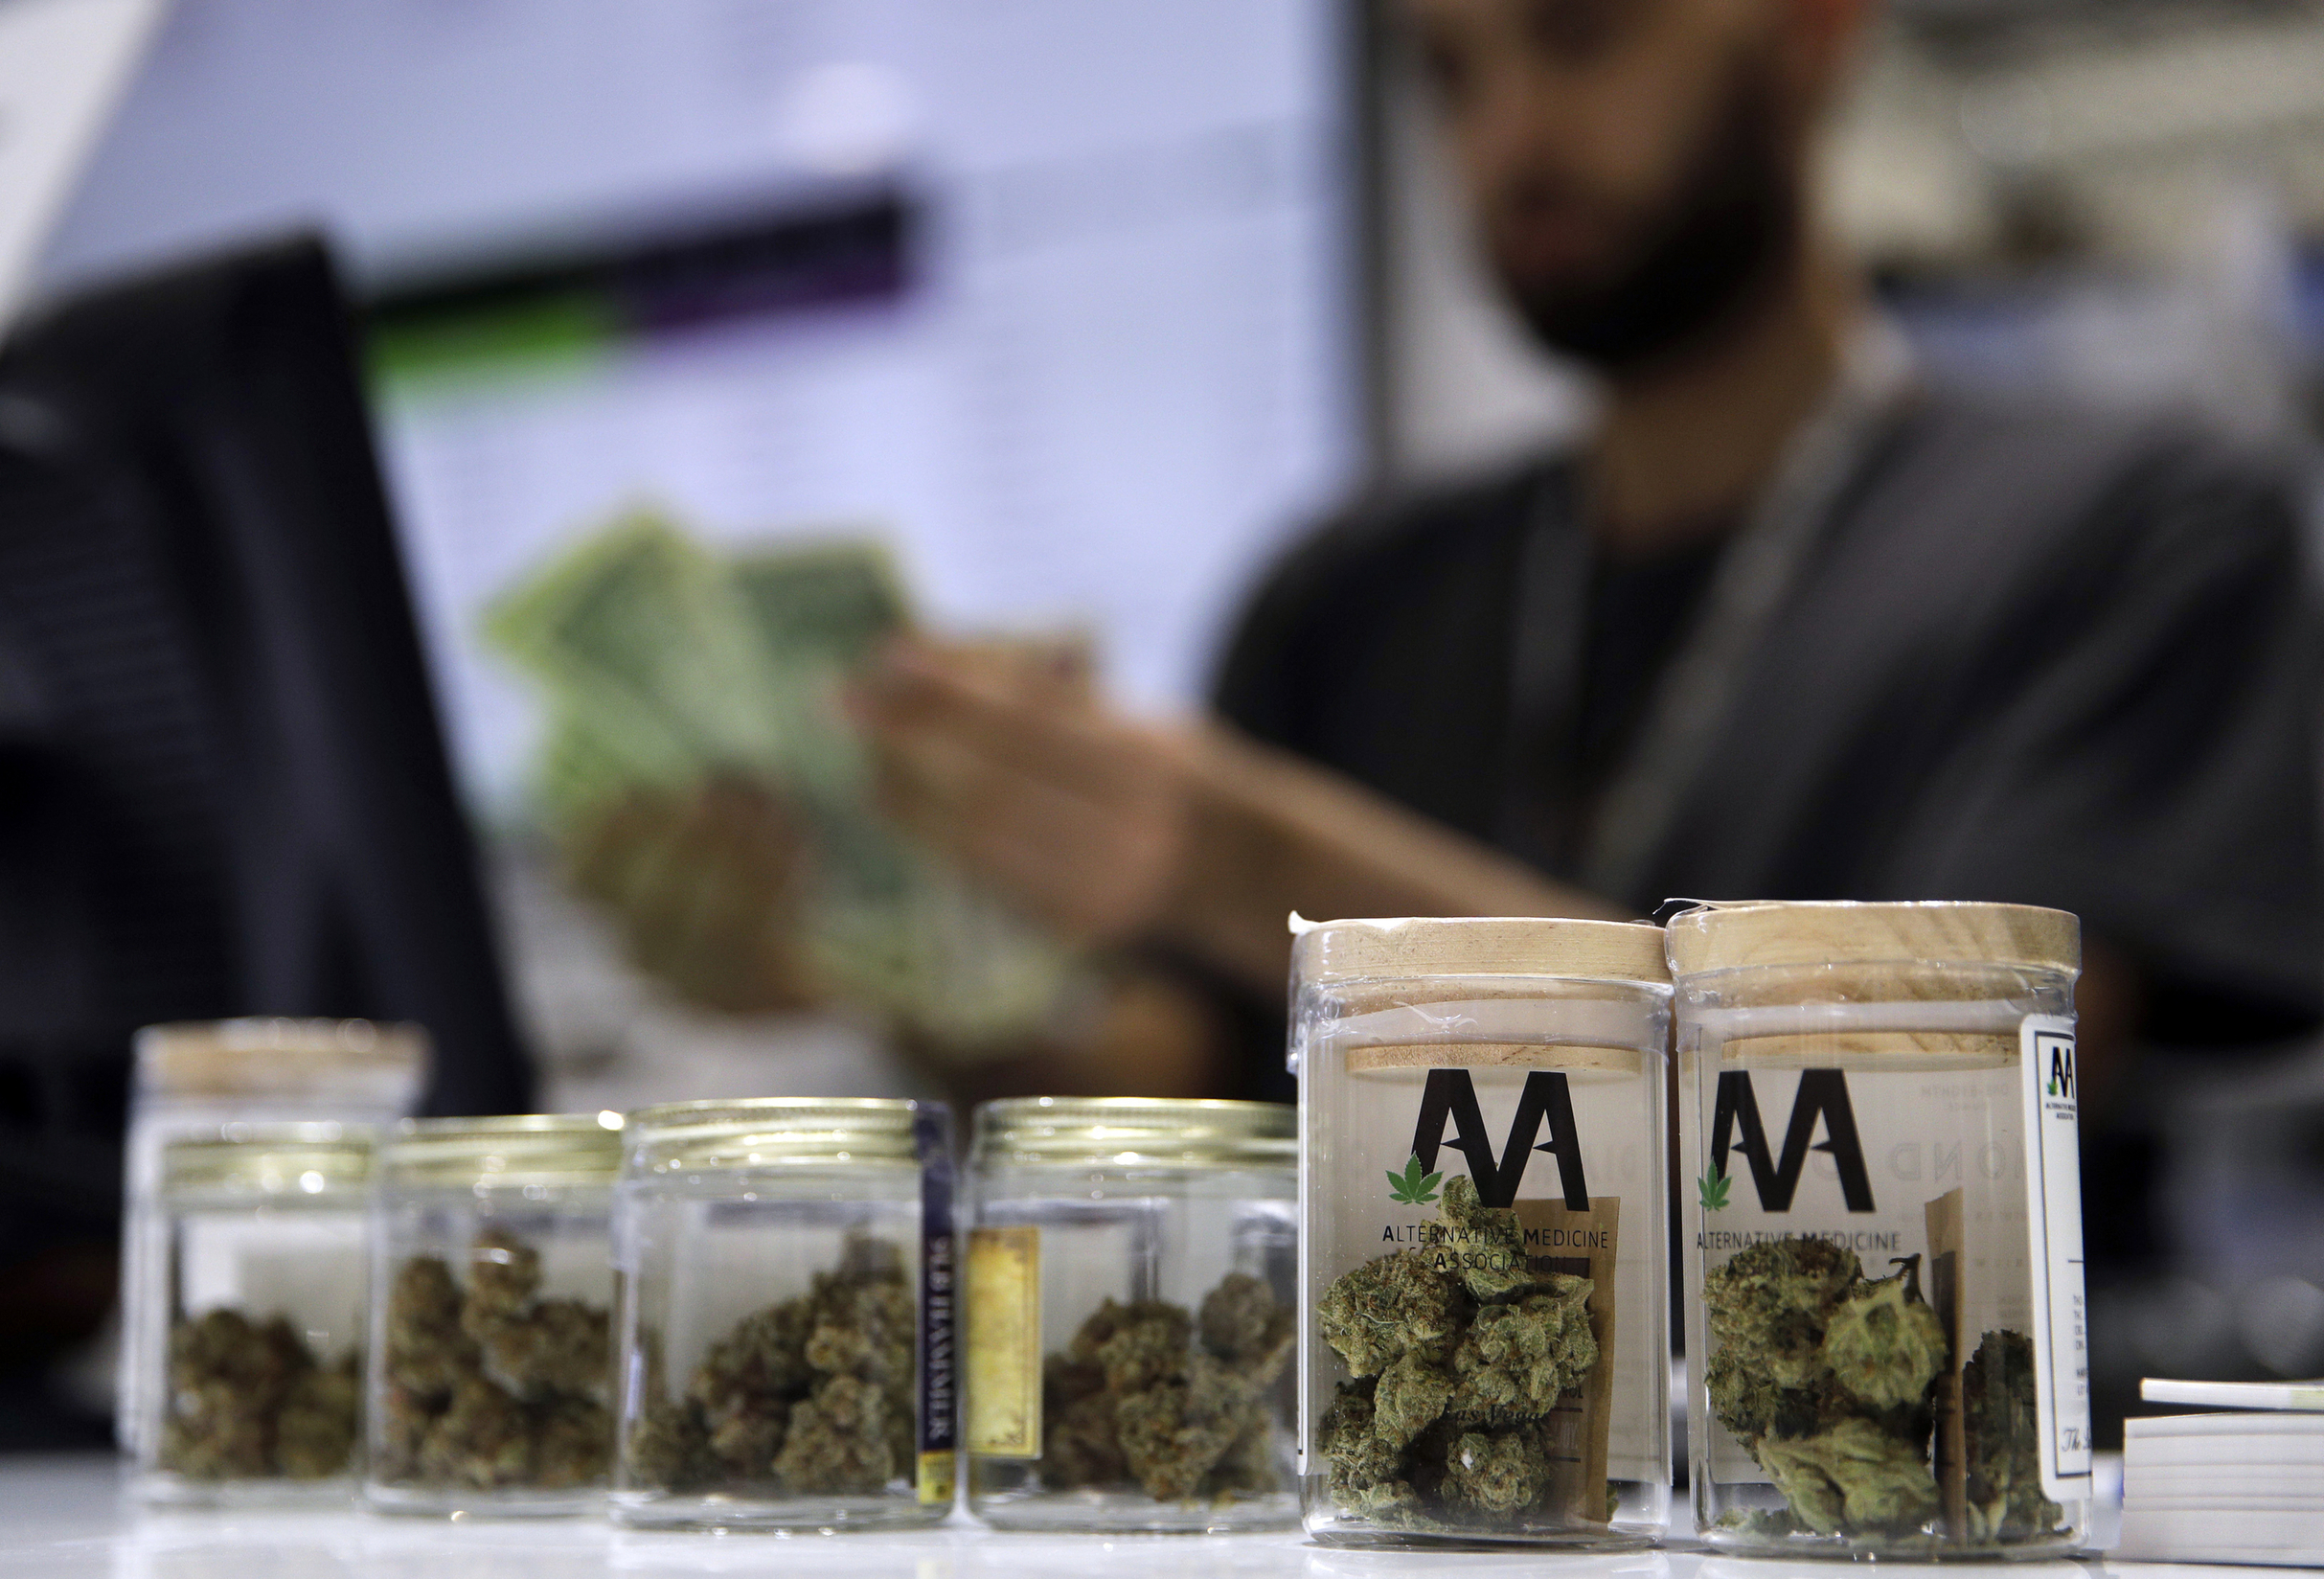 A cashier rings up a marijuana sale at a cannabis dispensary in Las Vegas.